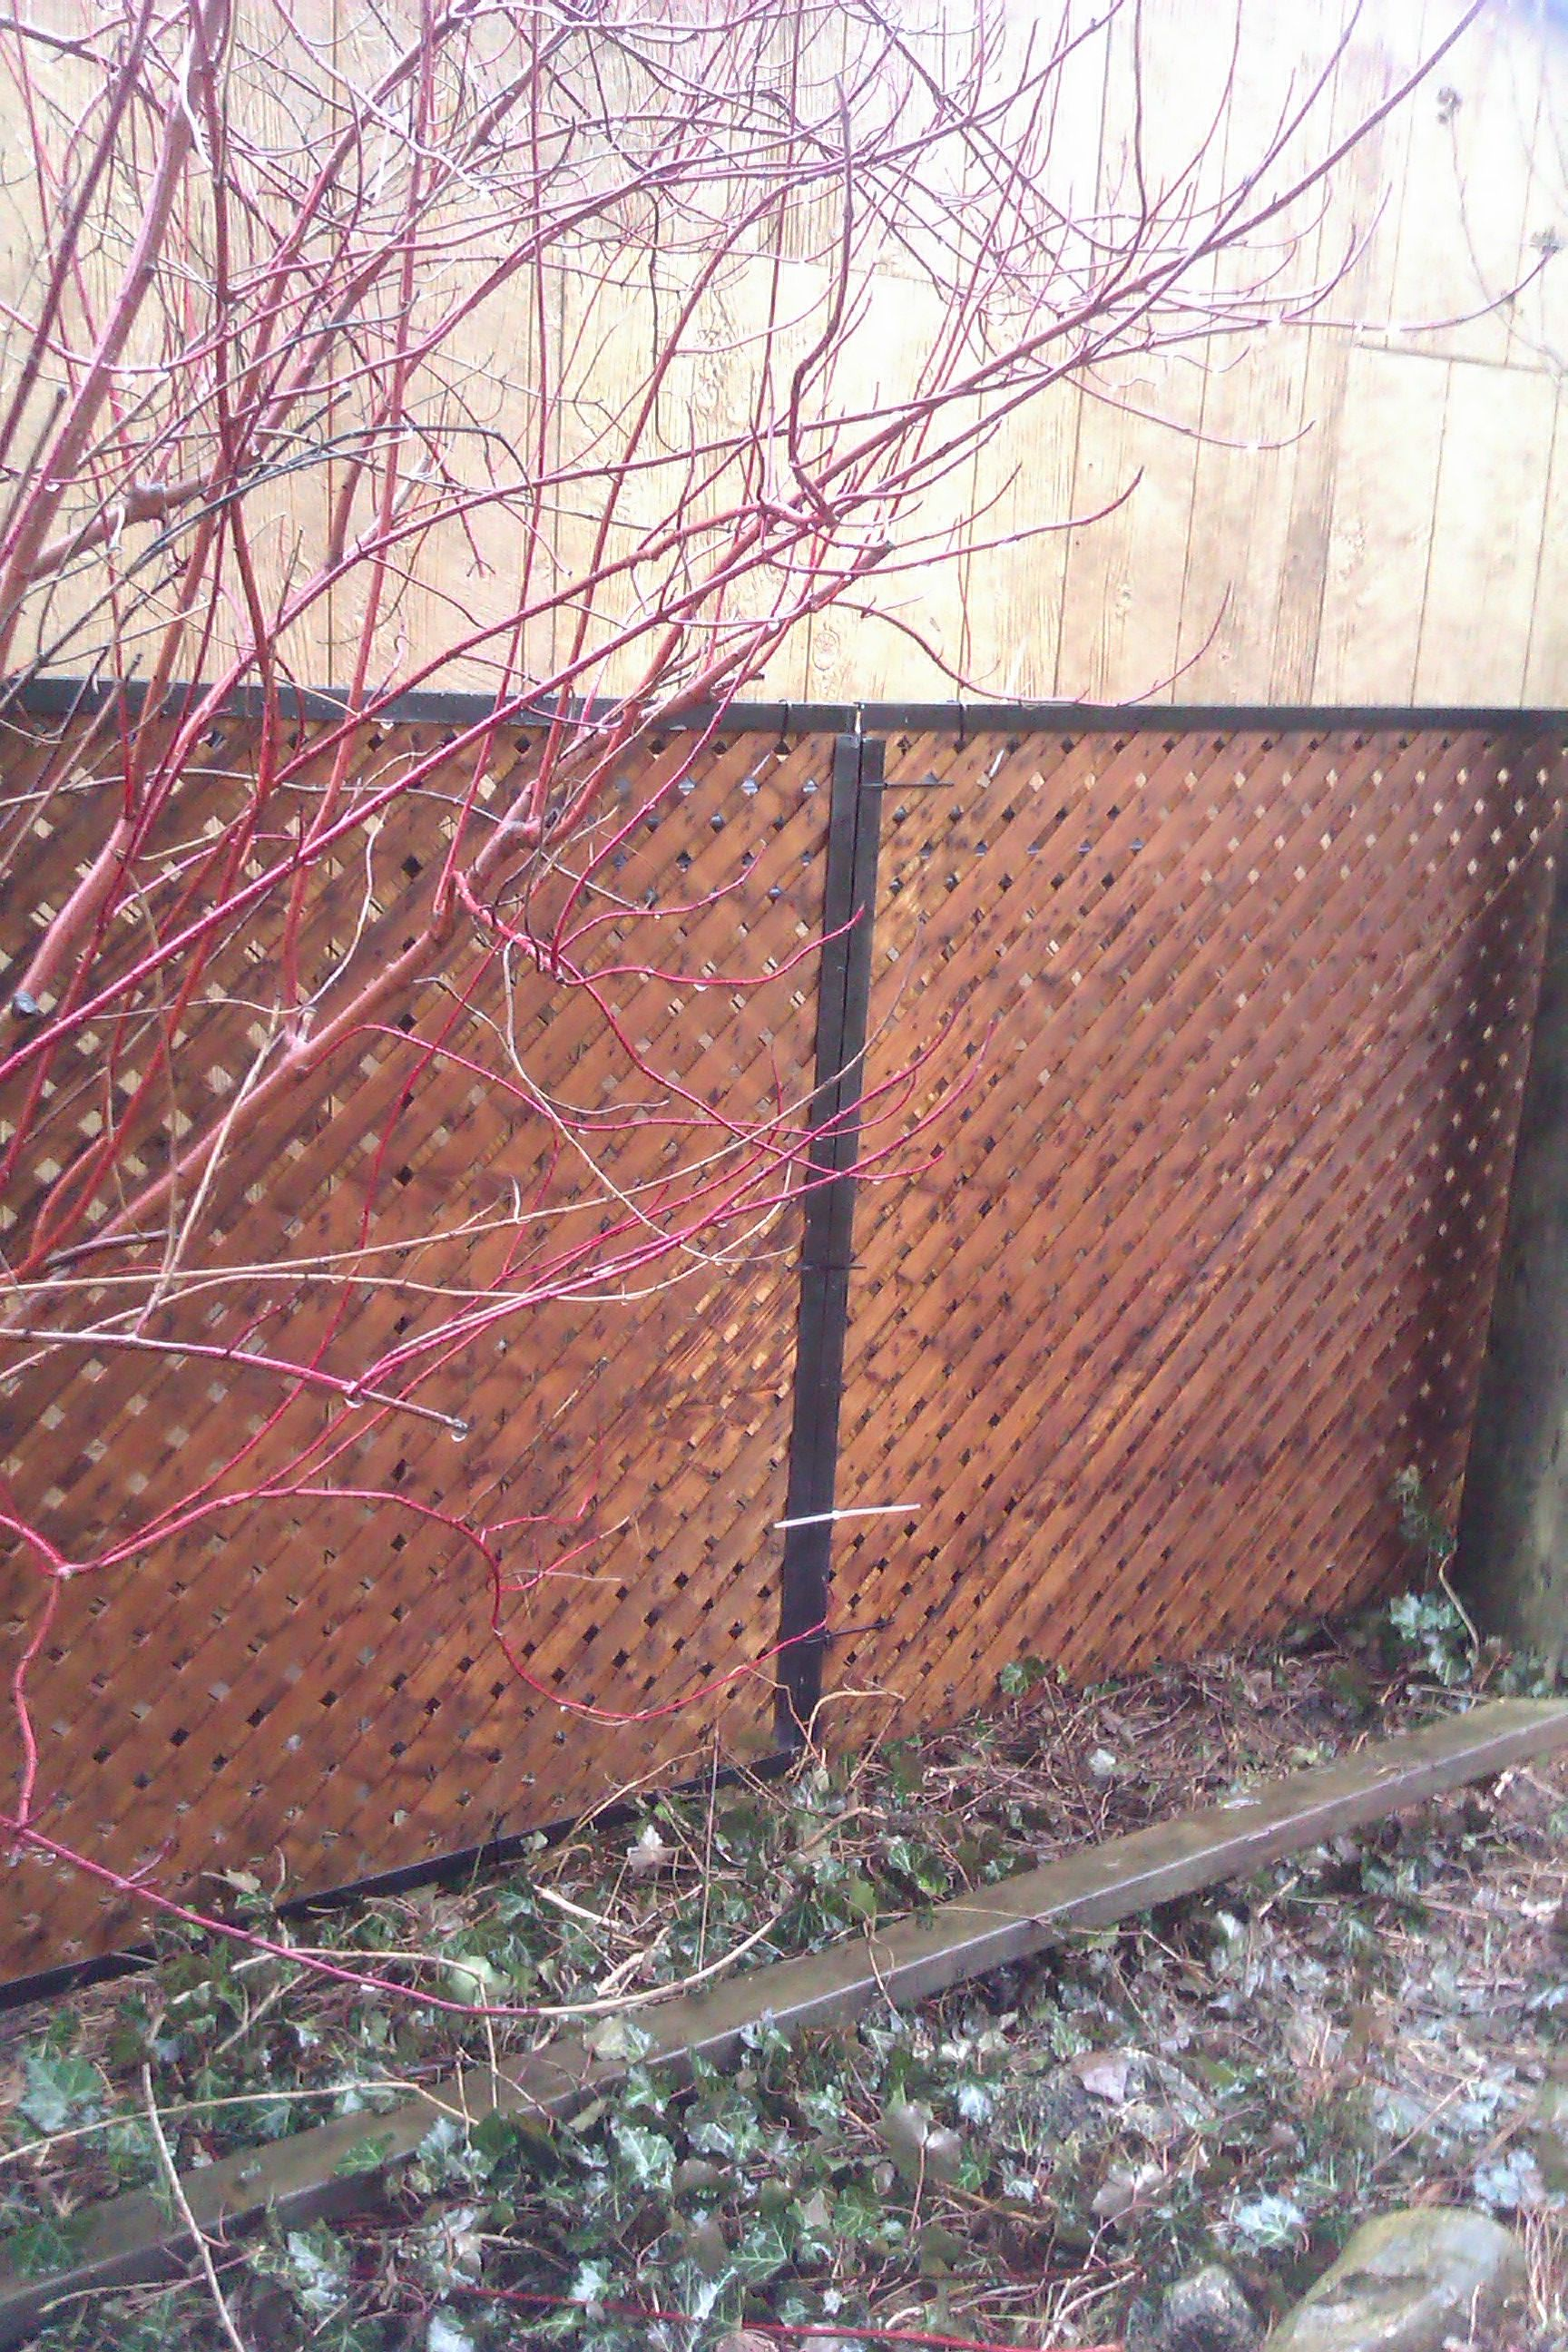 Privacy screen for chain link fence ebay - 25 Best Chain Link Fence Panels Ideas On Pinterest Marble Fence Wire Fence And Wire Fence Panels